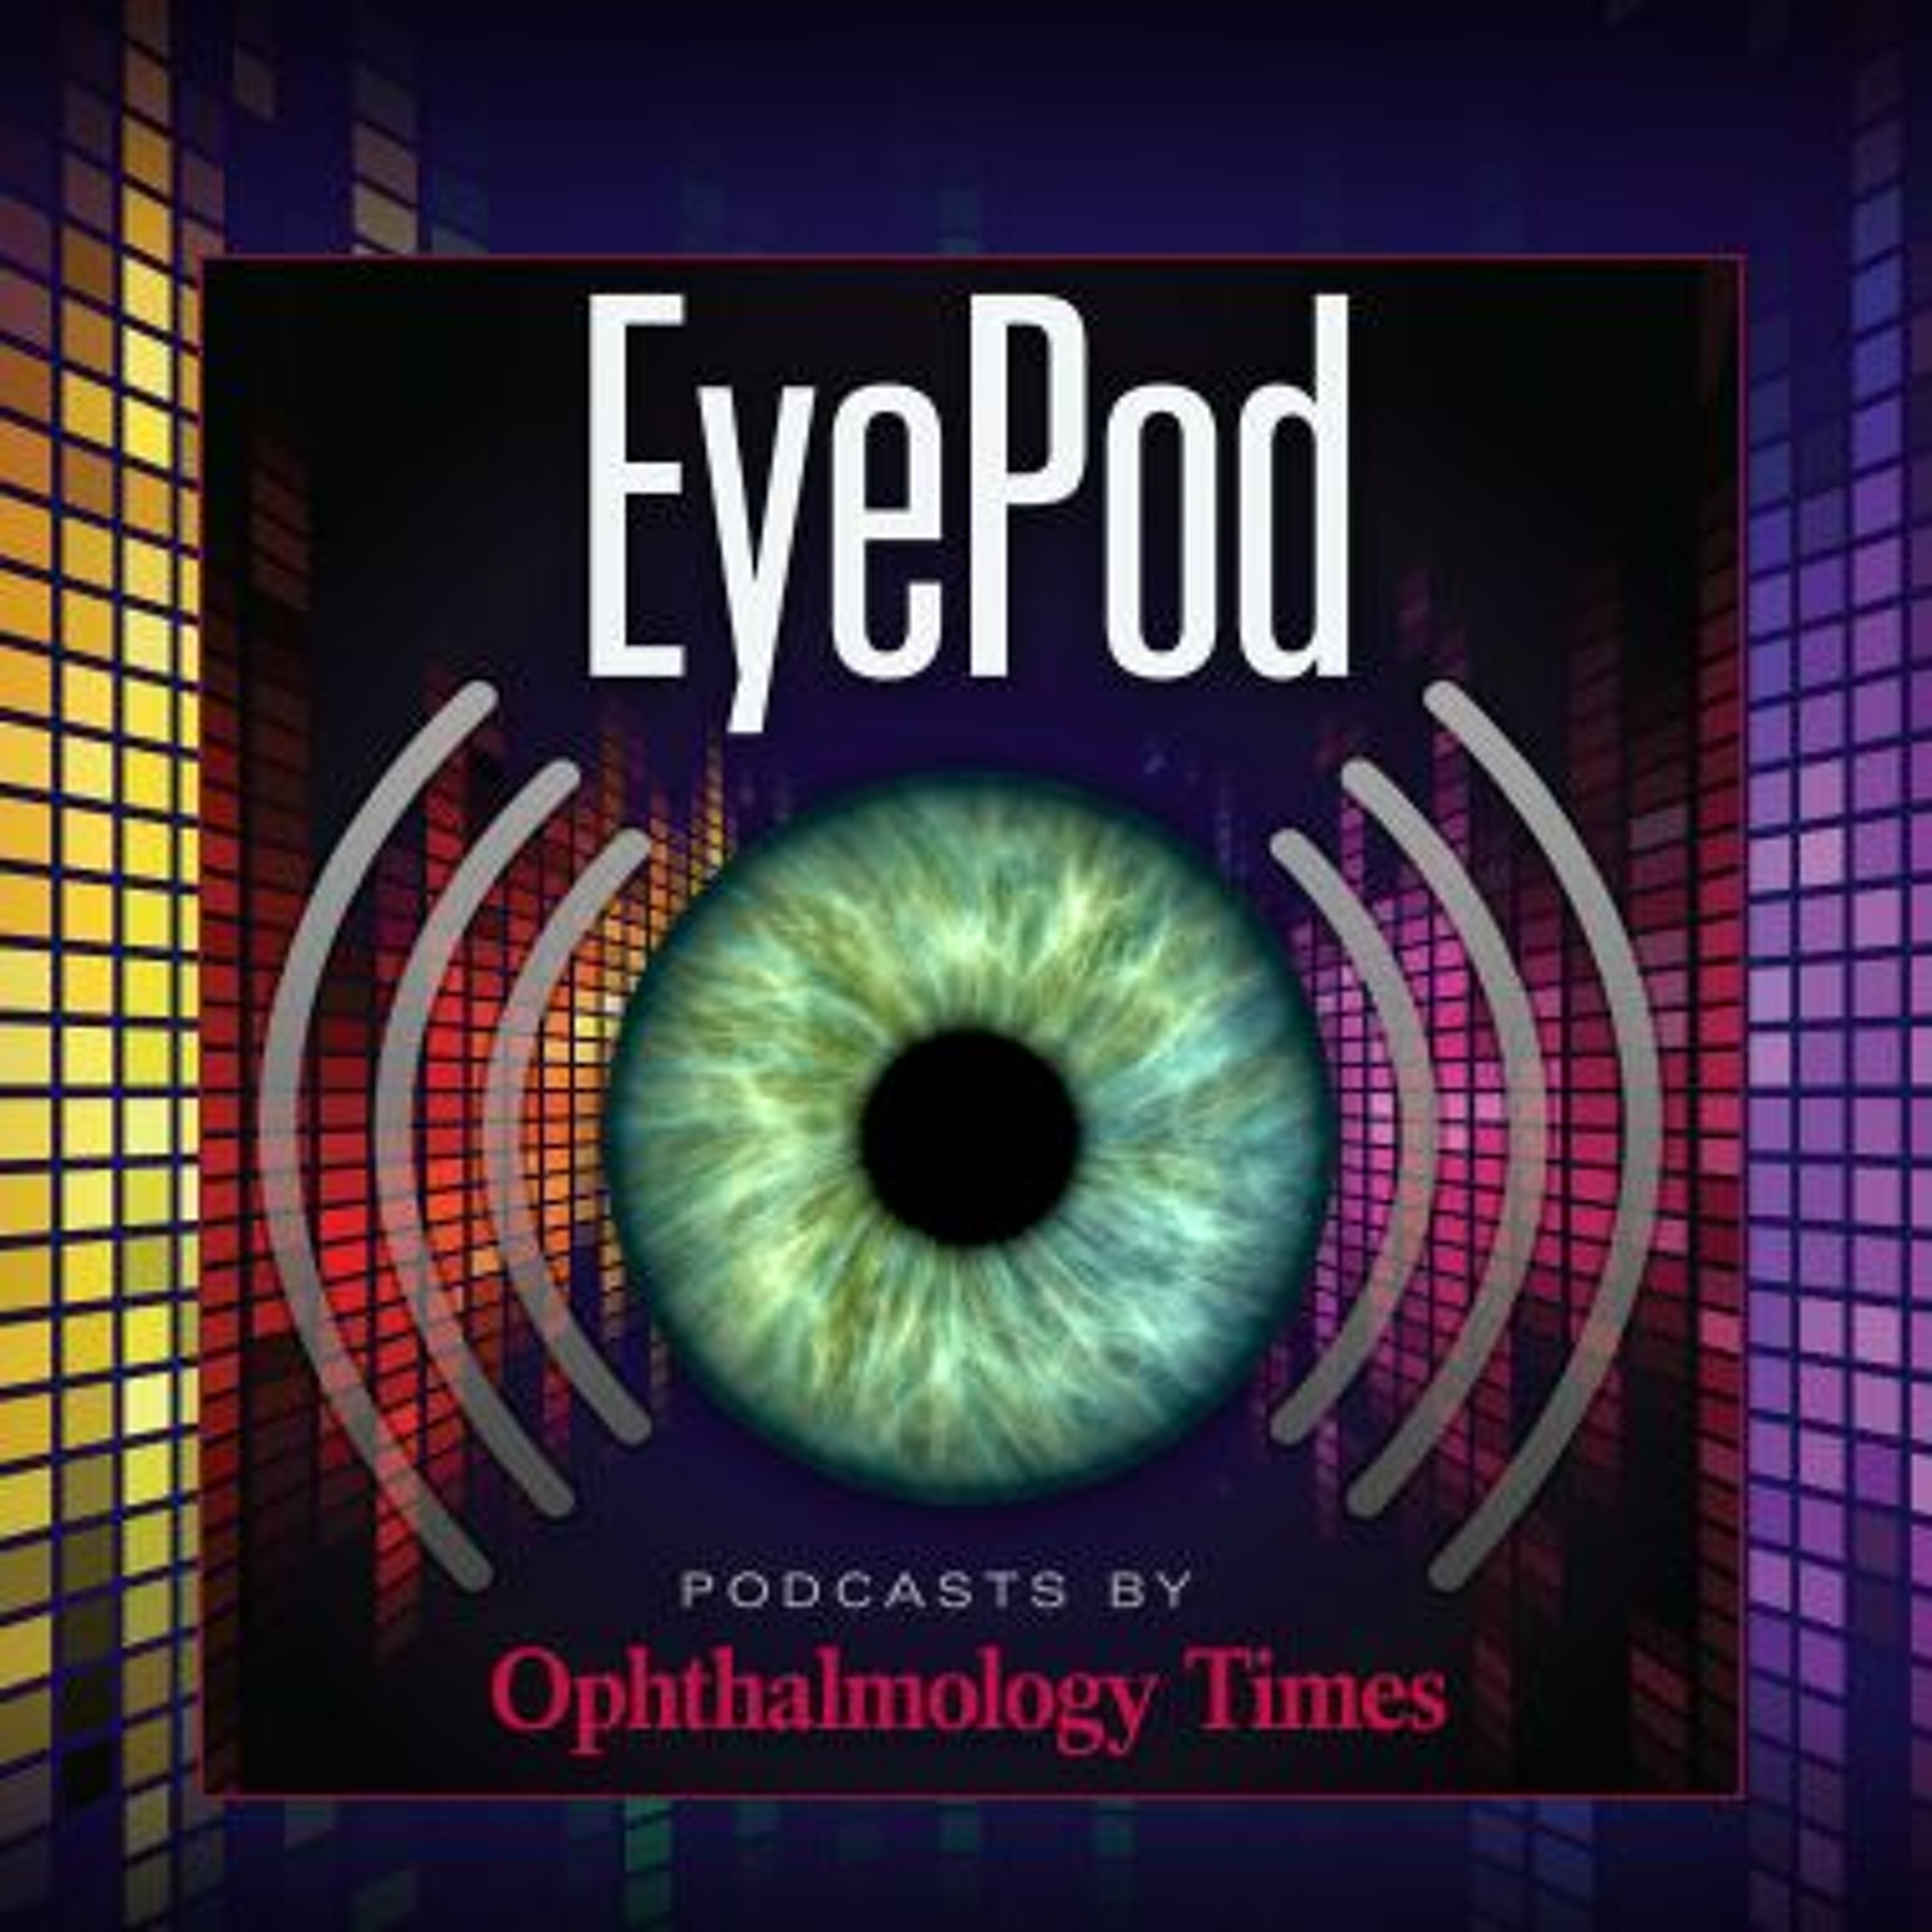 Episode 8: It's time to add IPL therapy to your toolbox